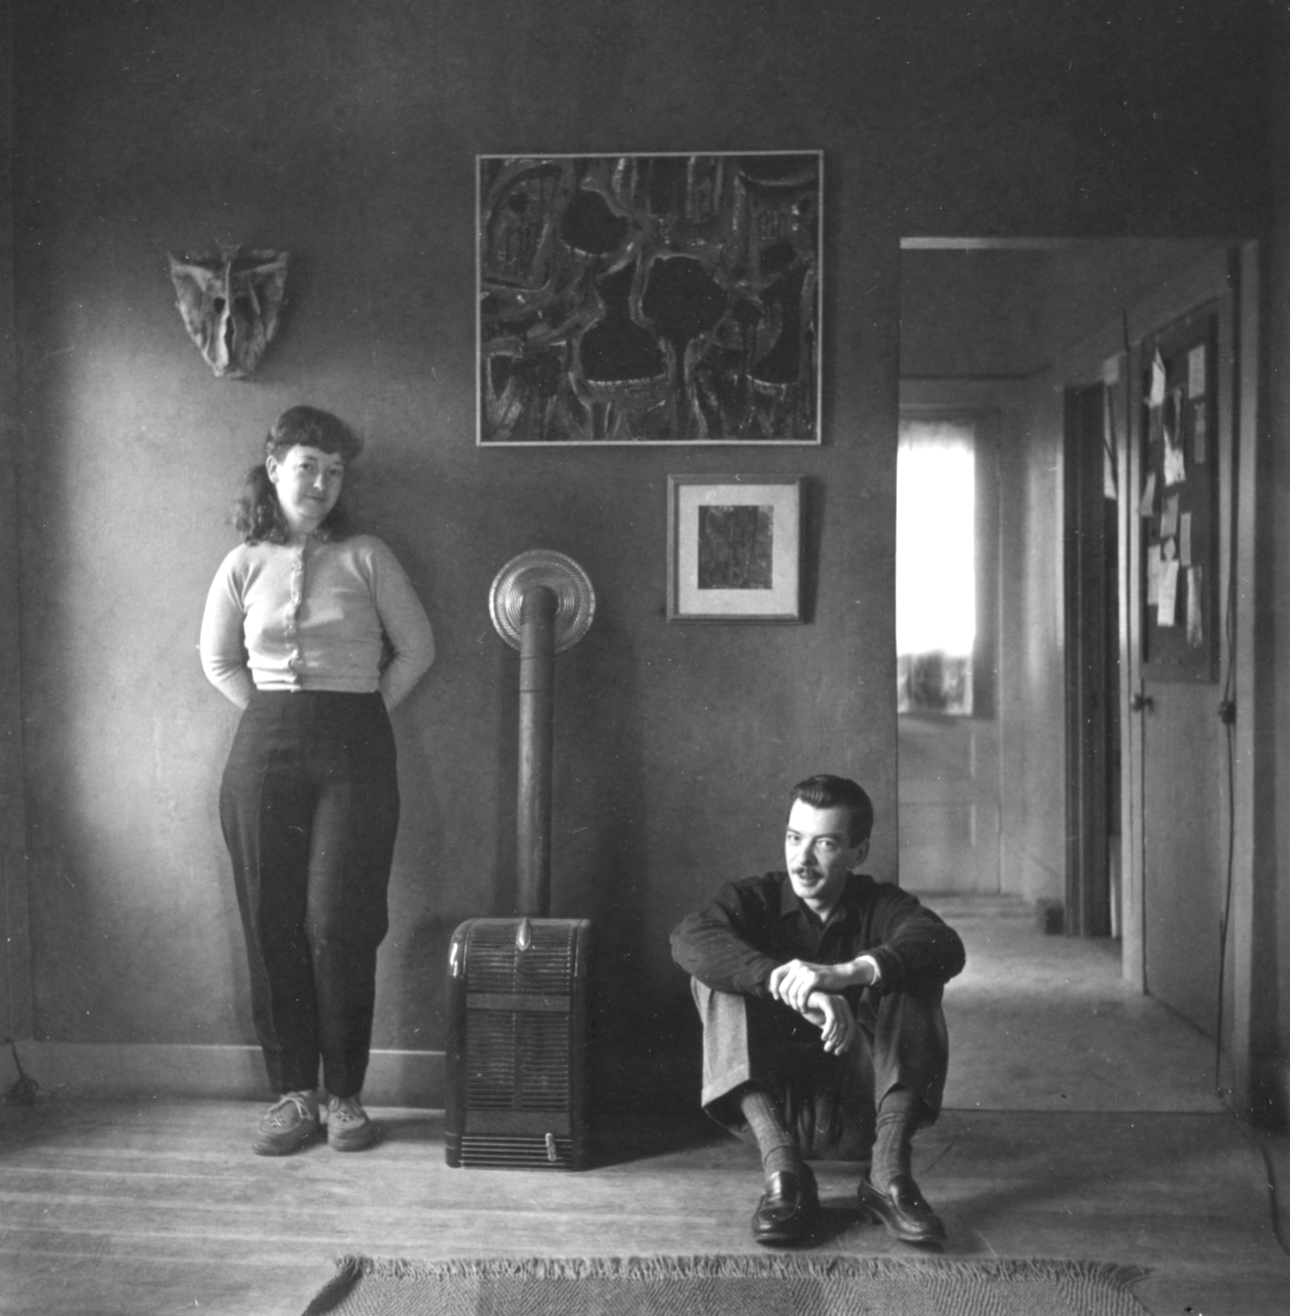 Weldon and Ann Kees, California, 1953© Dan Wynn Archive